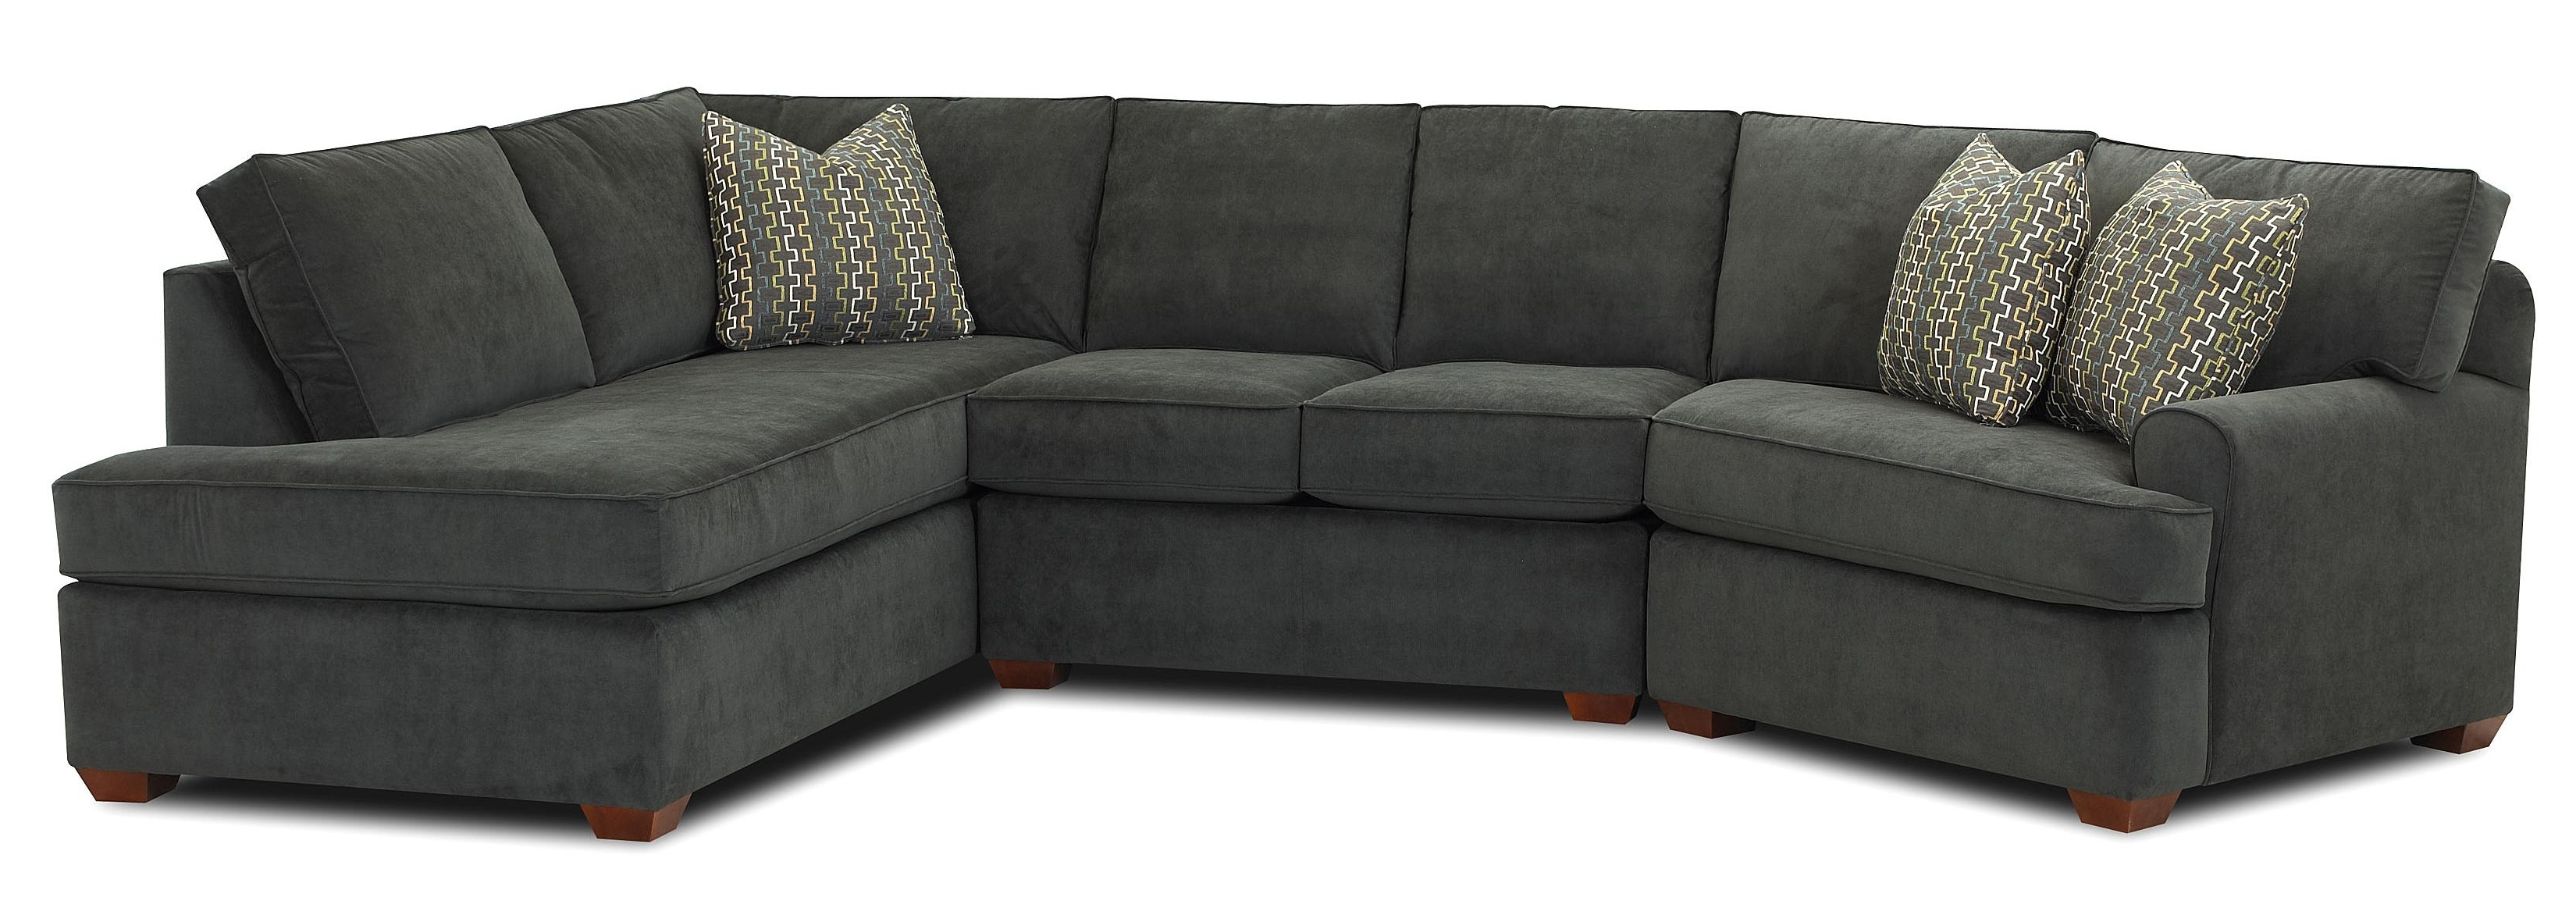 Sectional Sofa Design: Elegant Sectional Sofas Chaise Chaise Pertaining To Trendy Sectional Chaise Sofas (View 2 of 15)